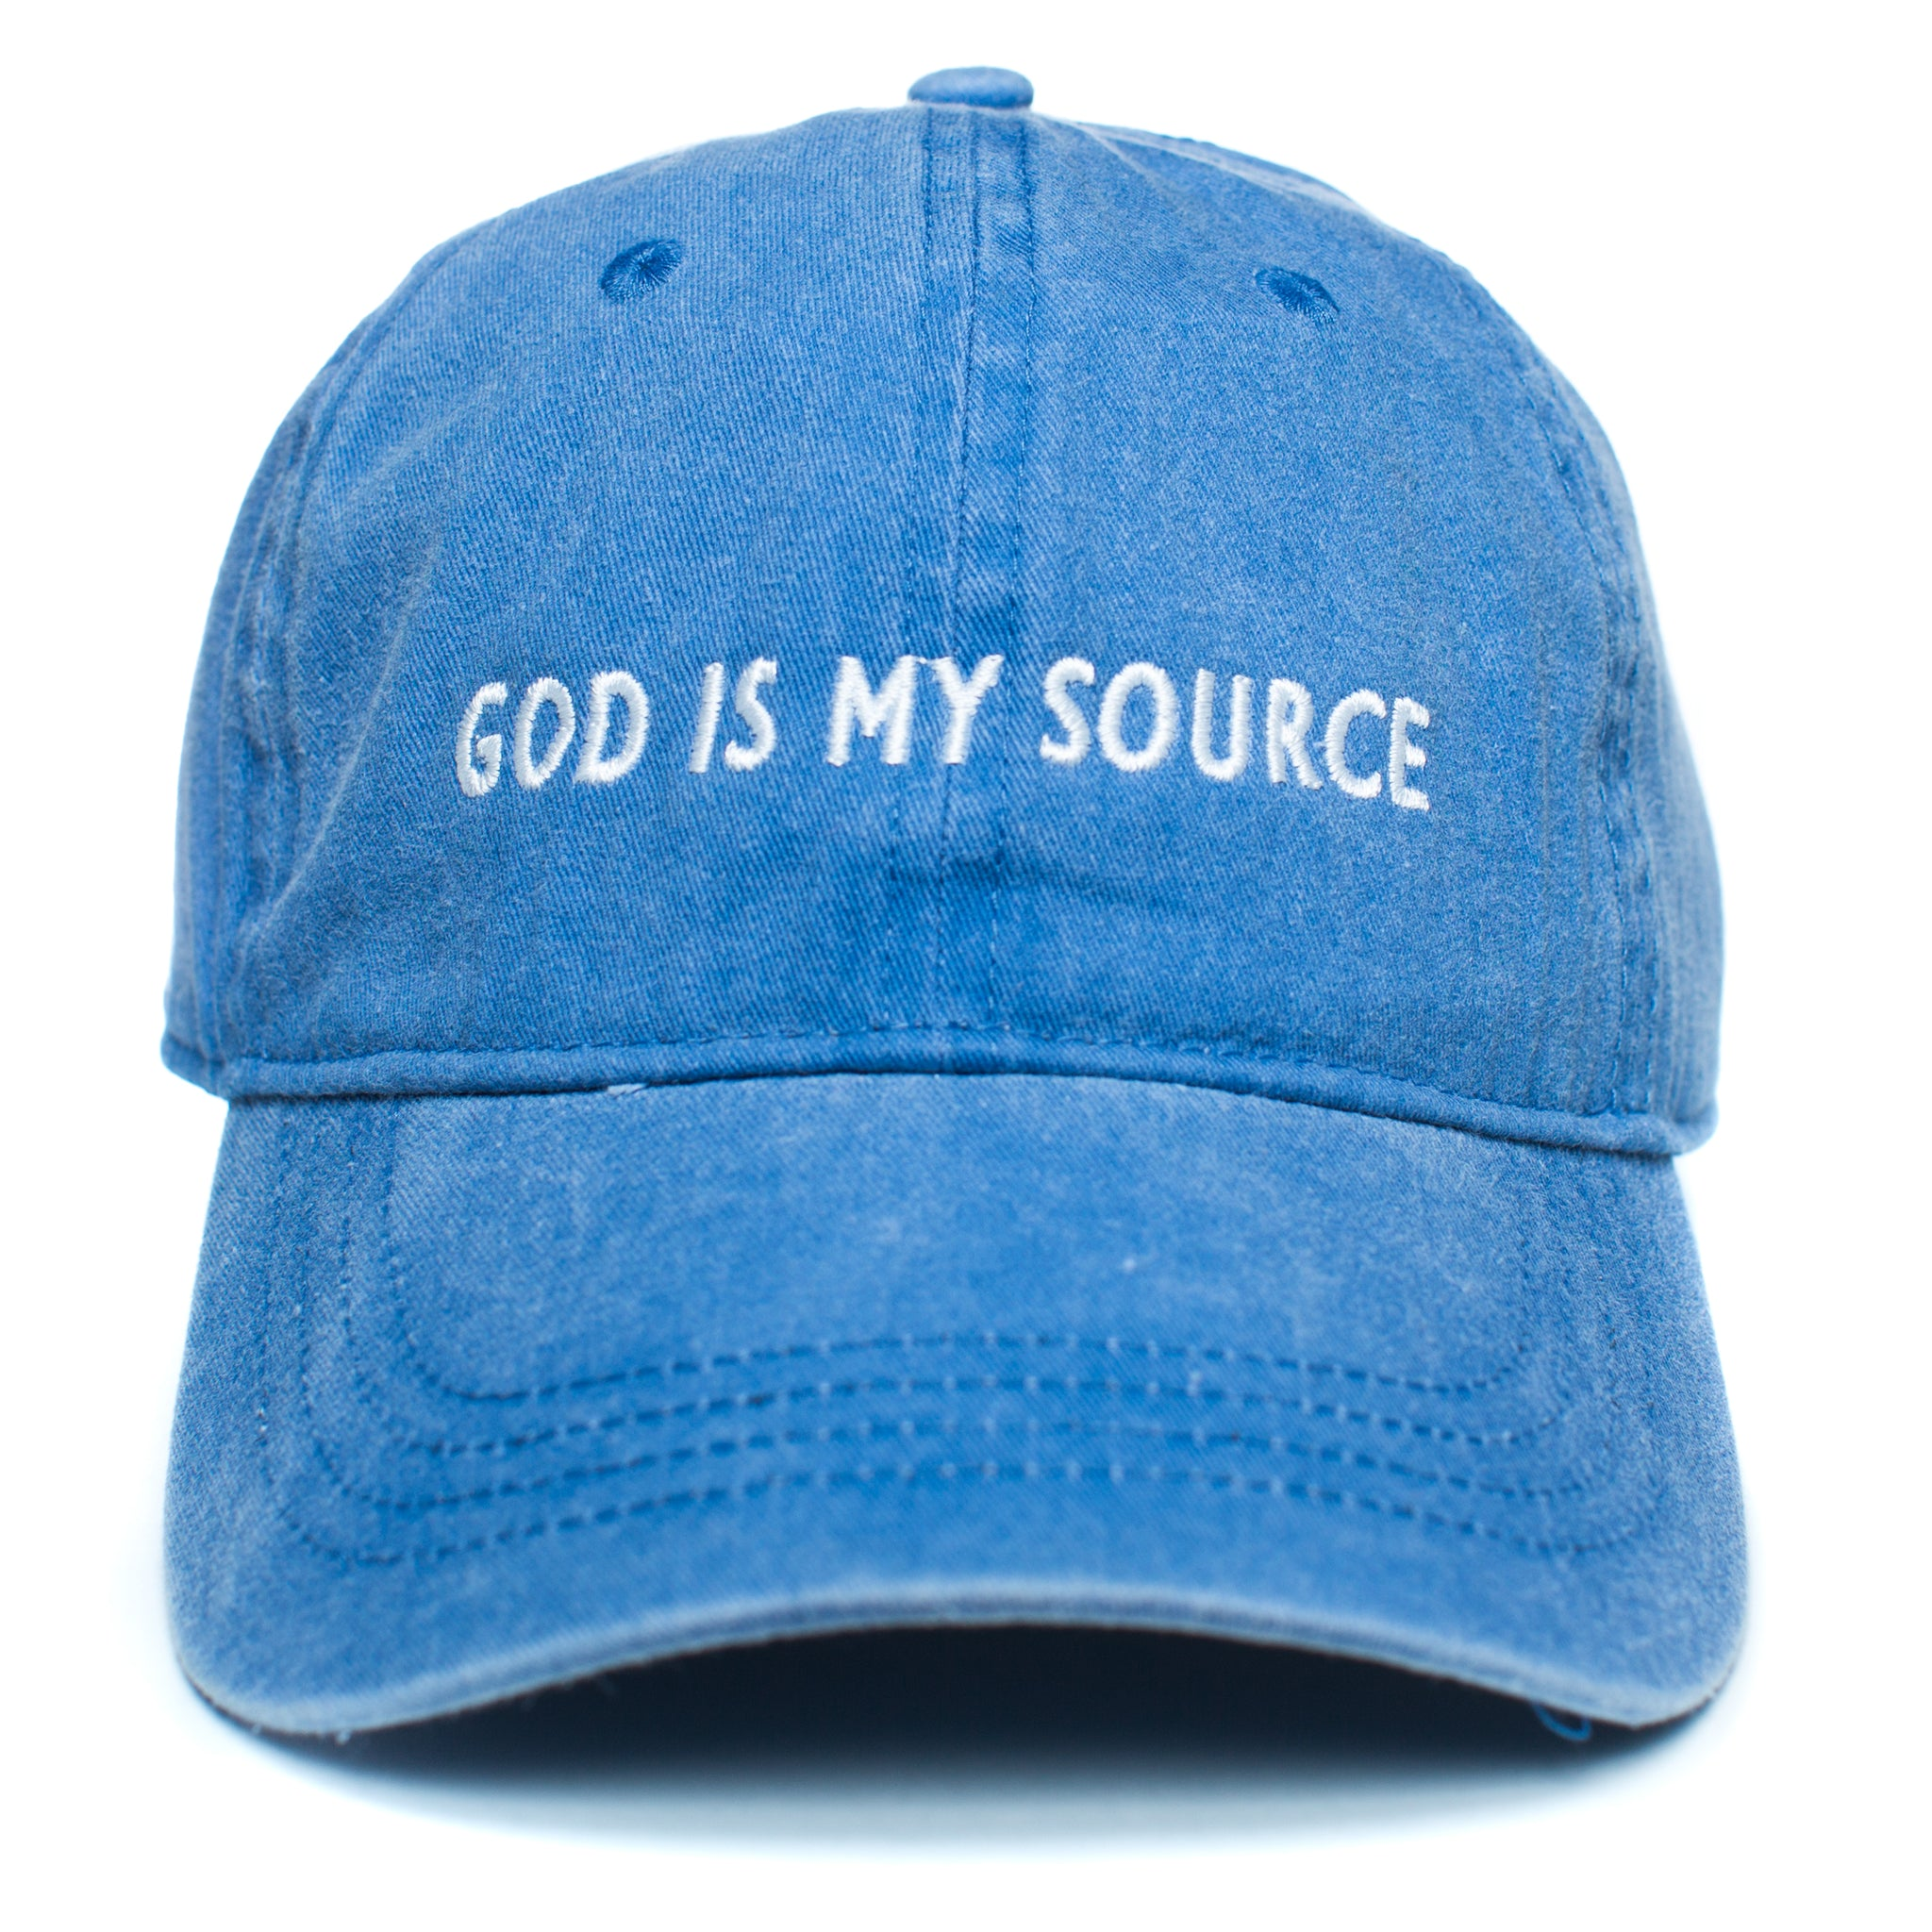 God Is My Source Dad Hat Royal/White - hat God Is My Source